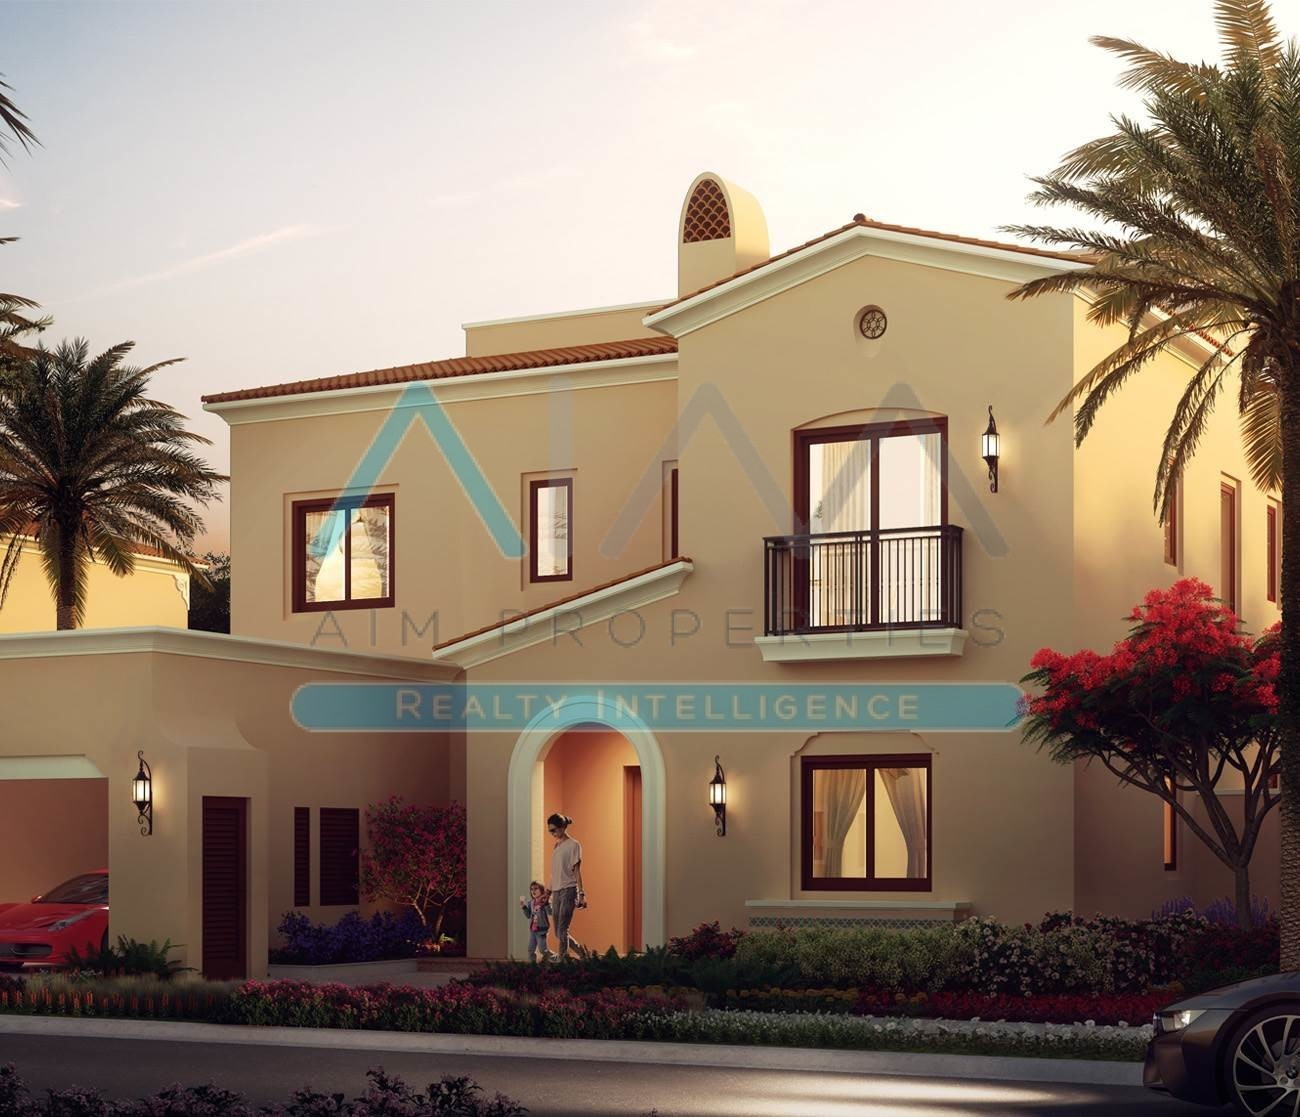 3 Bedroom Villa | 4% DLD WAIVER | 0% COM